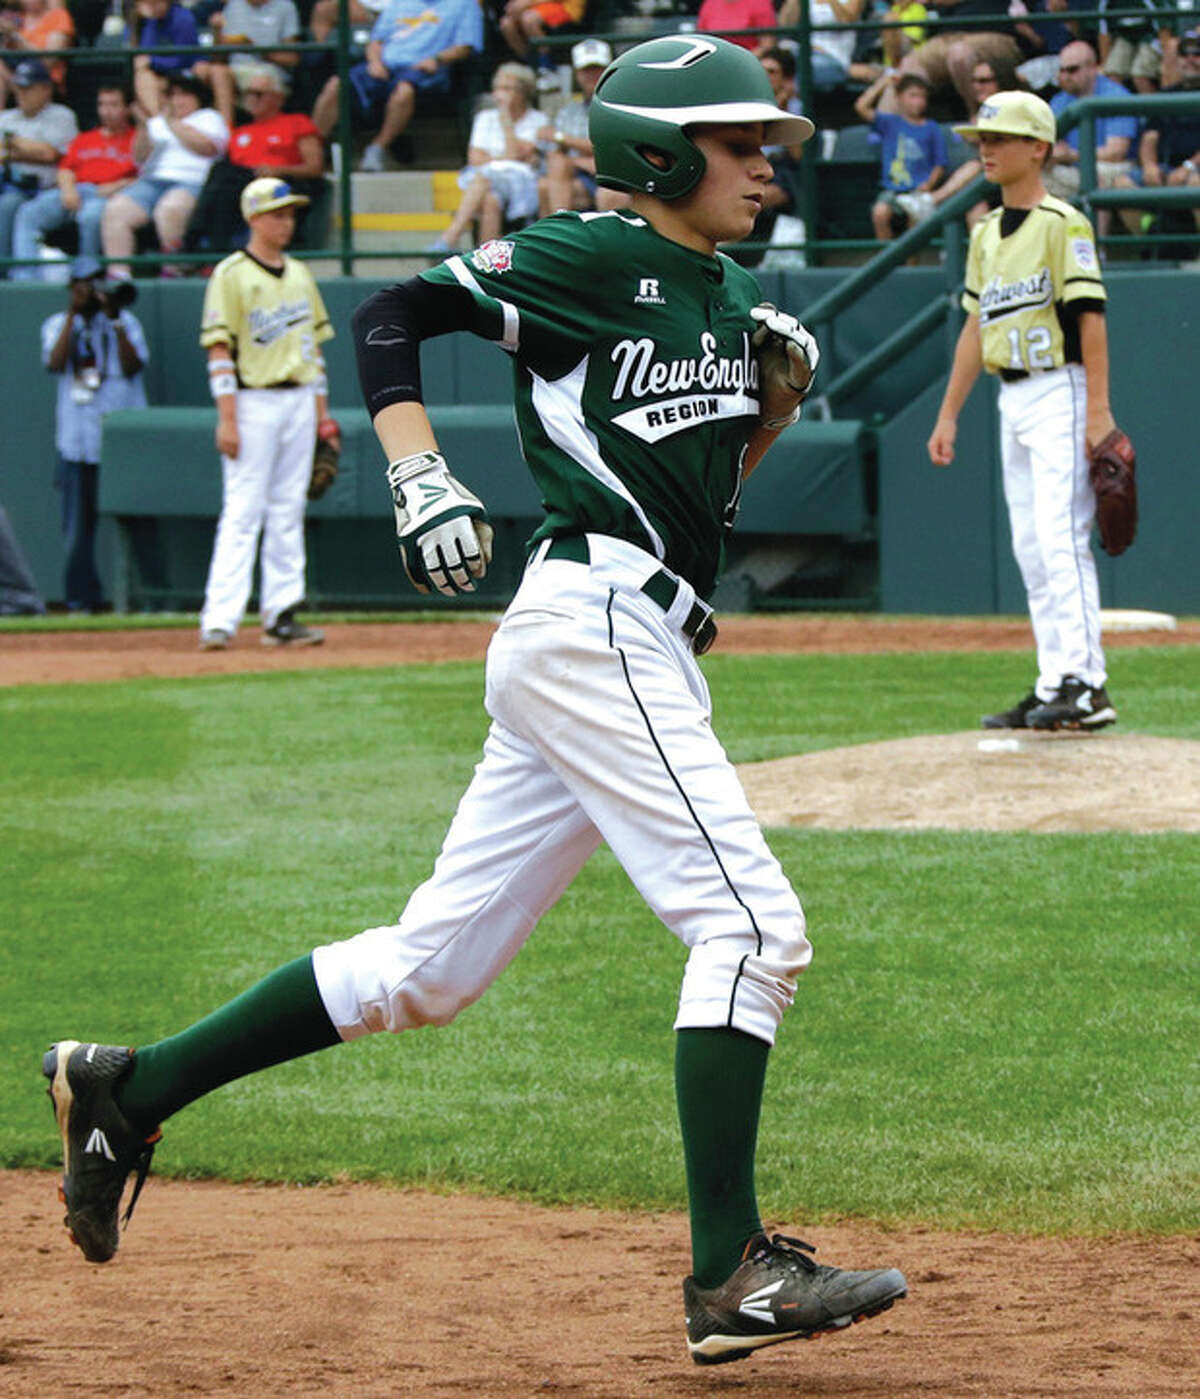 AP photo Harry Azadian rounds the bases after hitting a homer in Sunday's Little League World Series game. On Monday, Azadian was answering questions and chatting with ESPN SportsCenter anchr Karl Ravech.